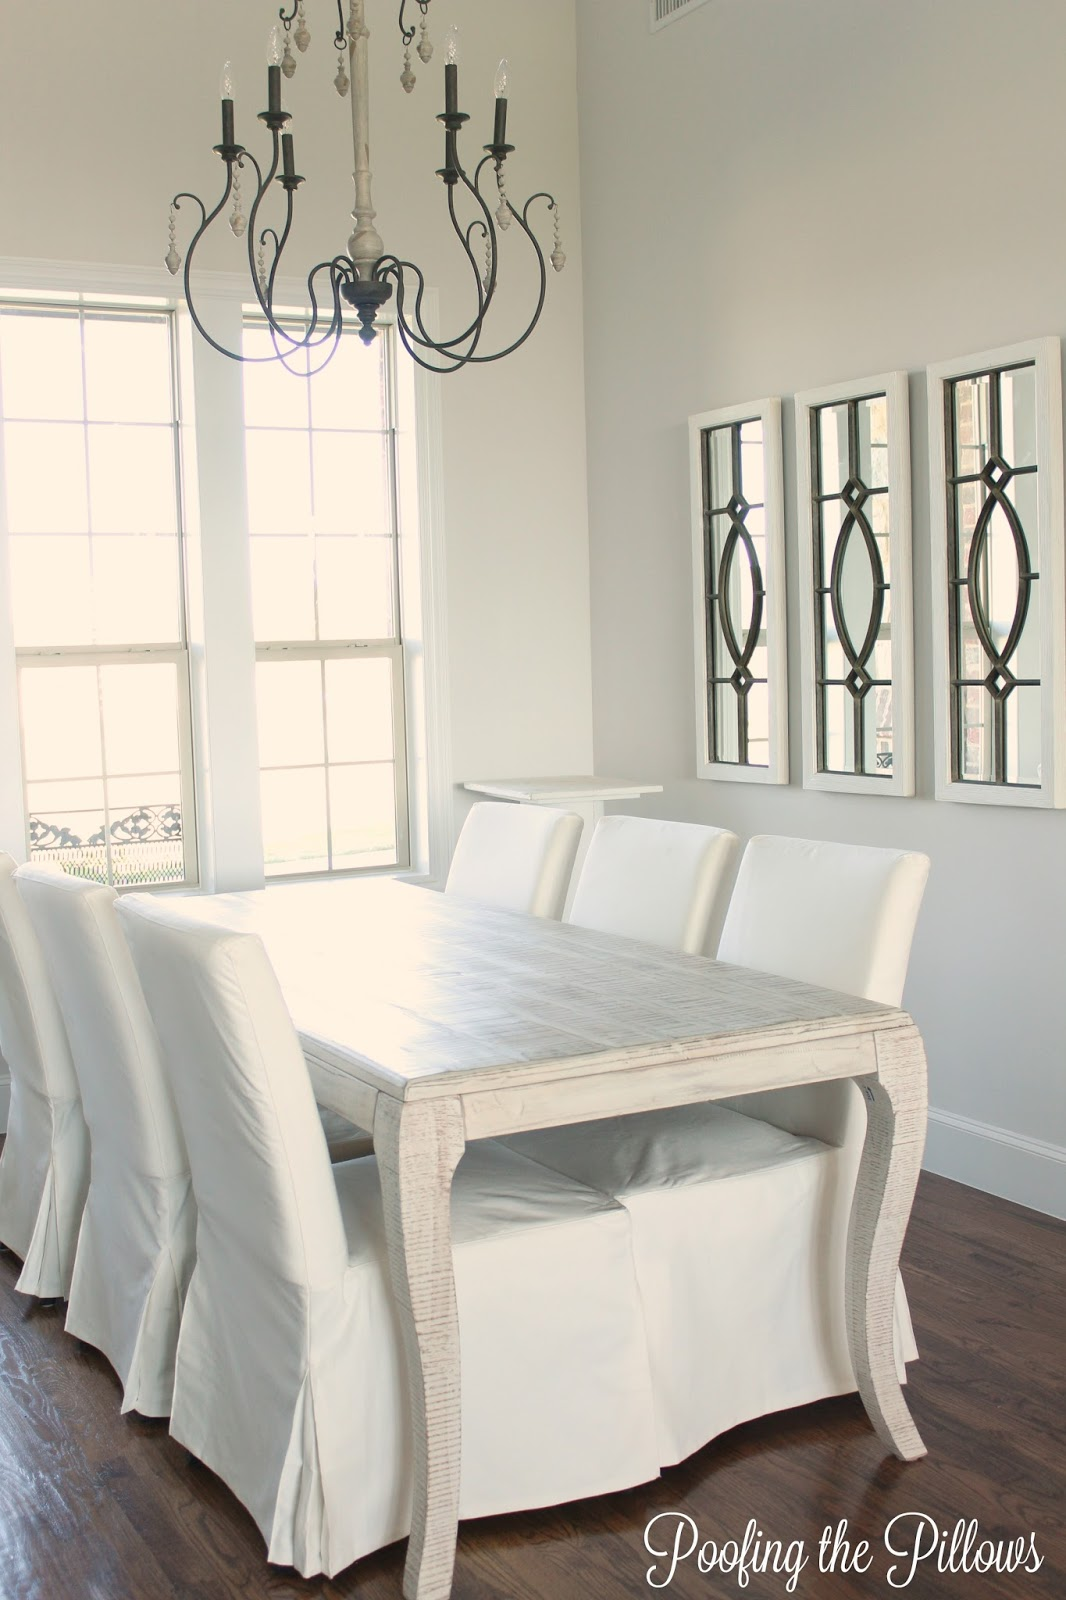 All white dining room needs color and texture.